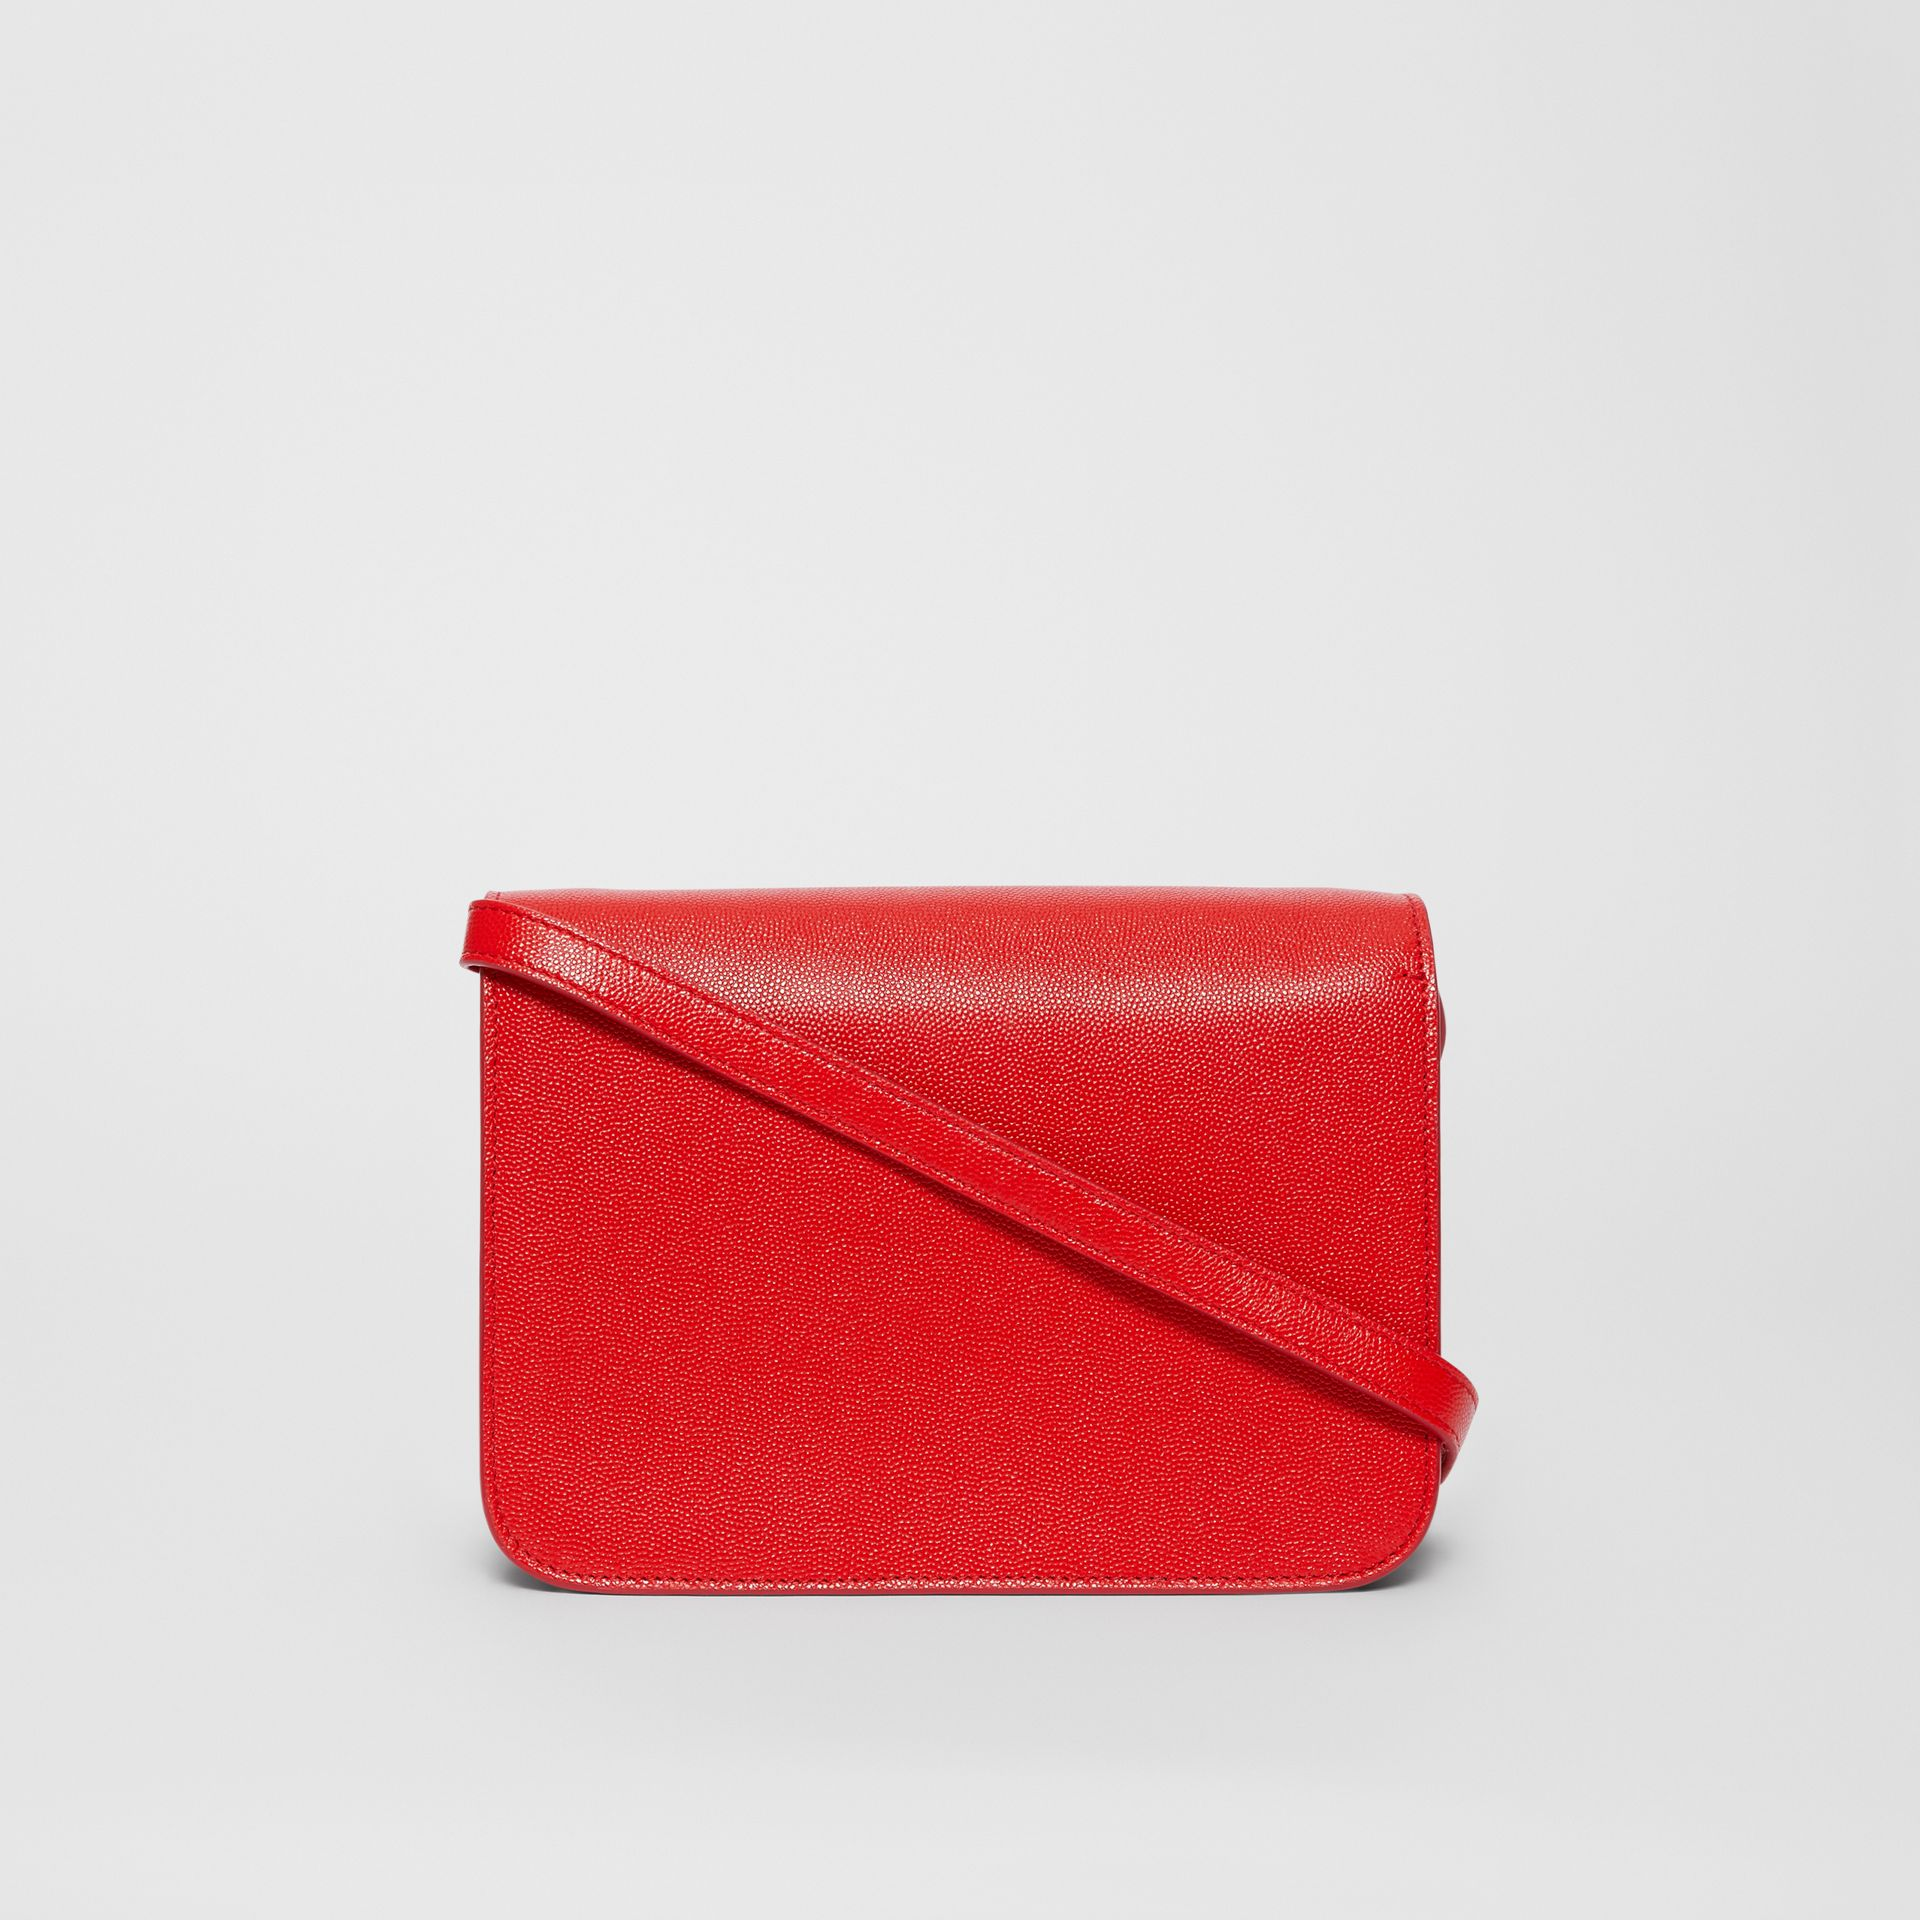 Small Grainy Leather TB Bag in Bright Red - Women | Burberry Australia - gallery image 7